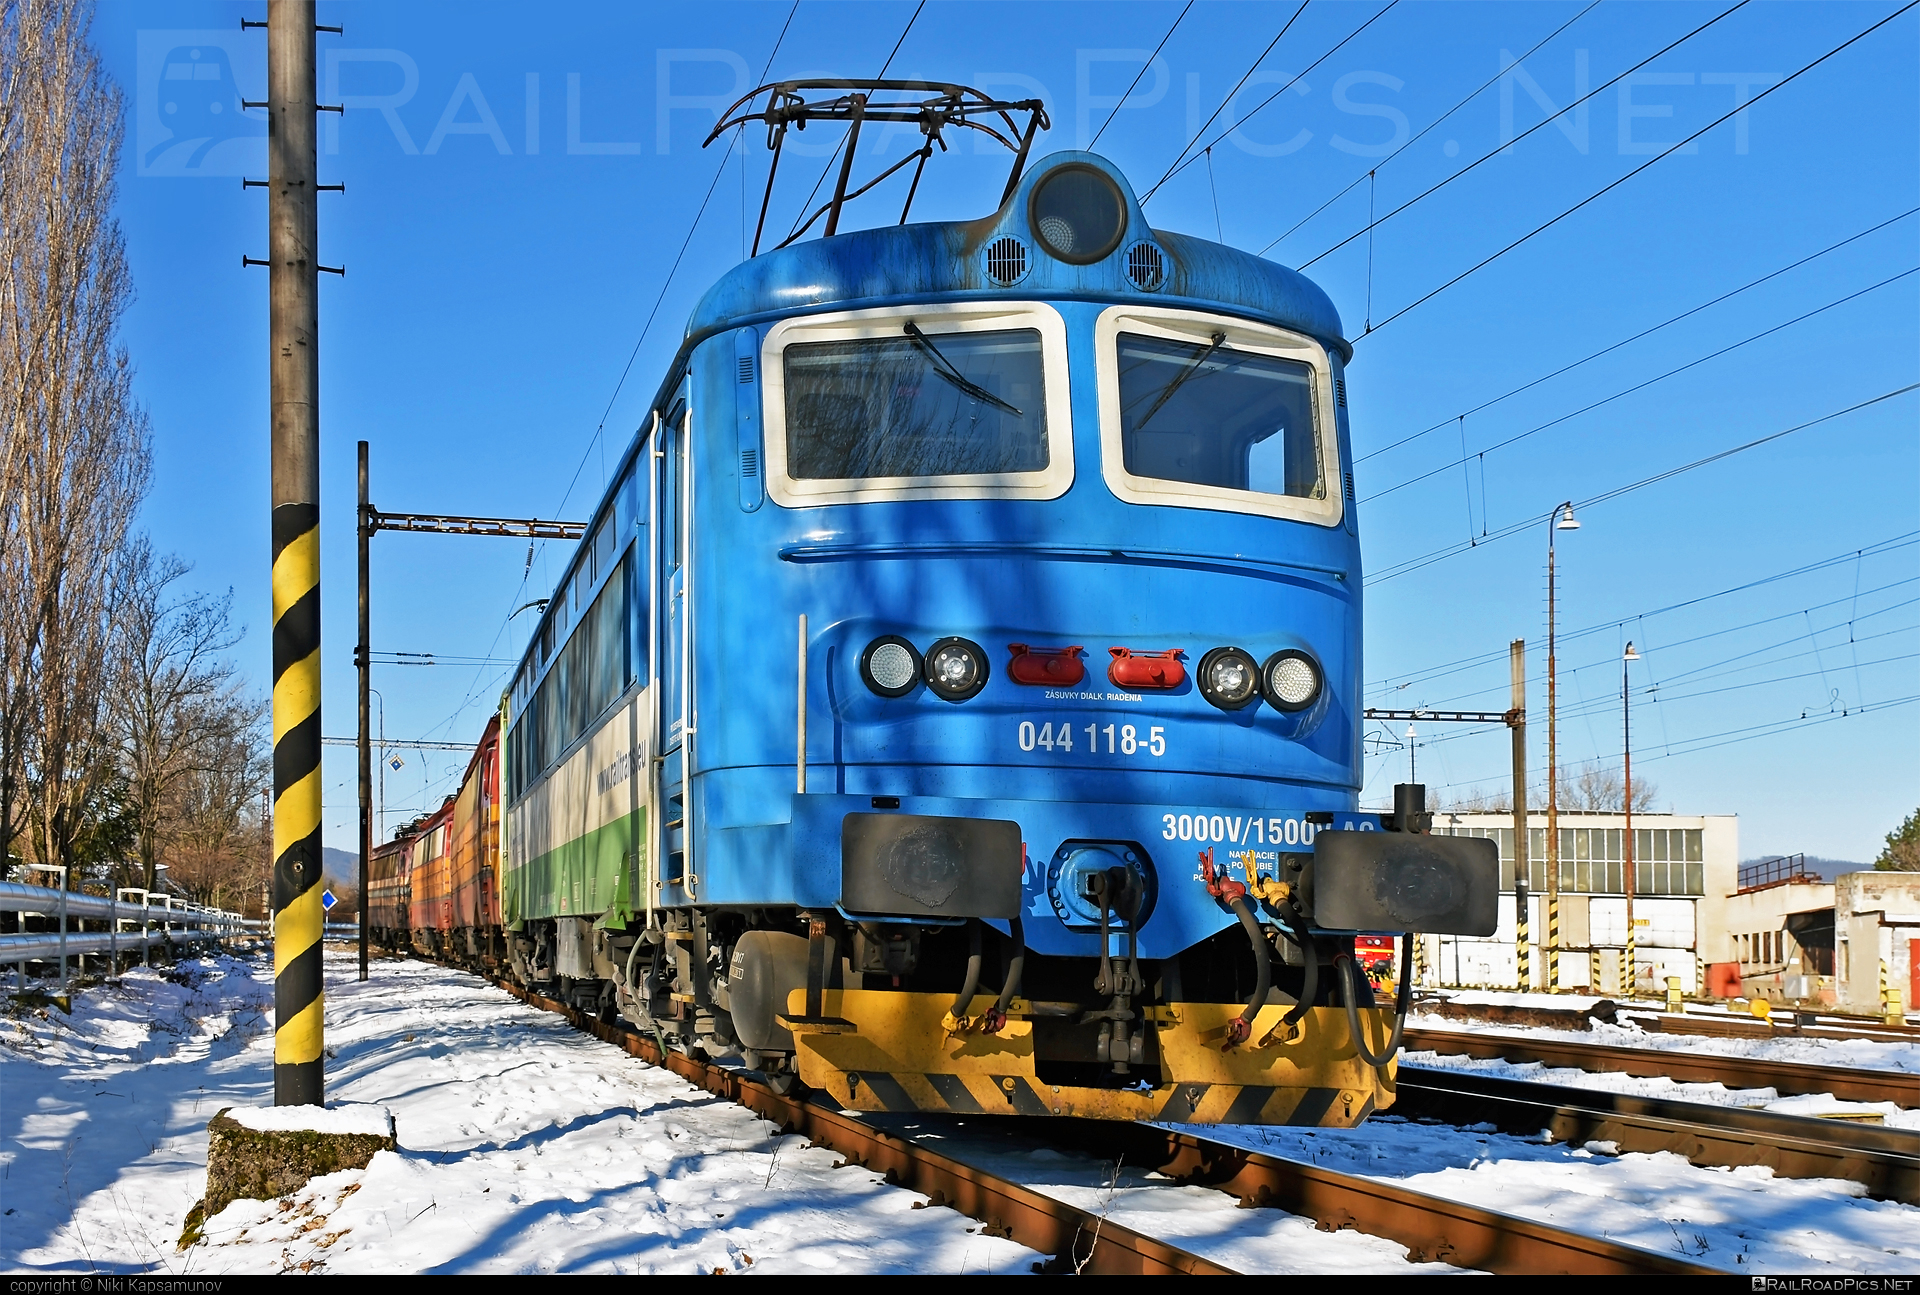 Škoda 73E - 044 118-5 operated by Railtrans International, s.r.o #locomotive242 #plechac #skoda #skoda73e